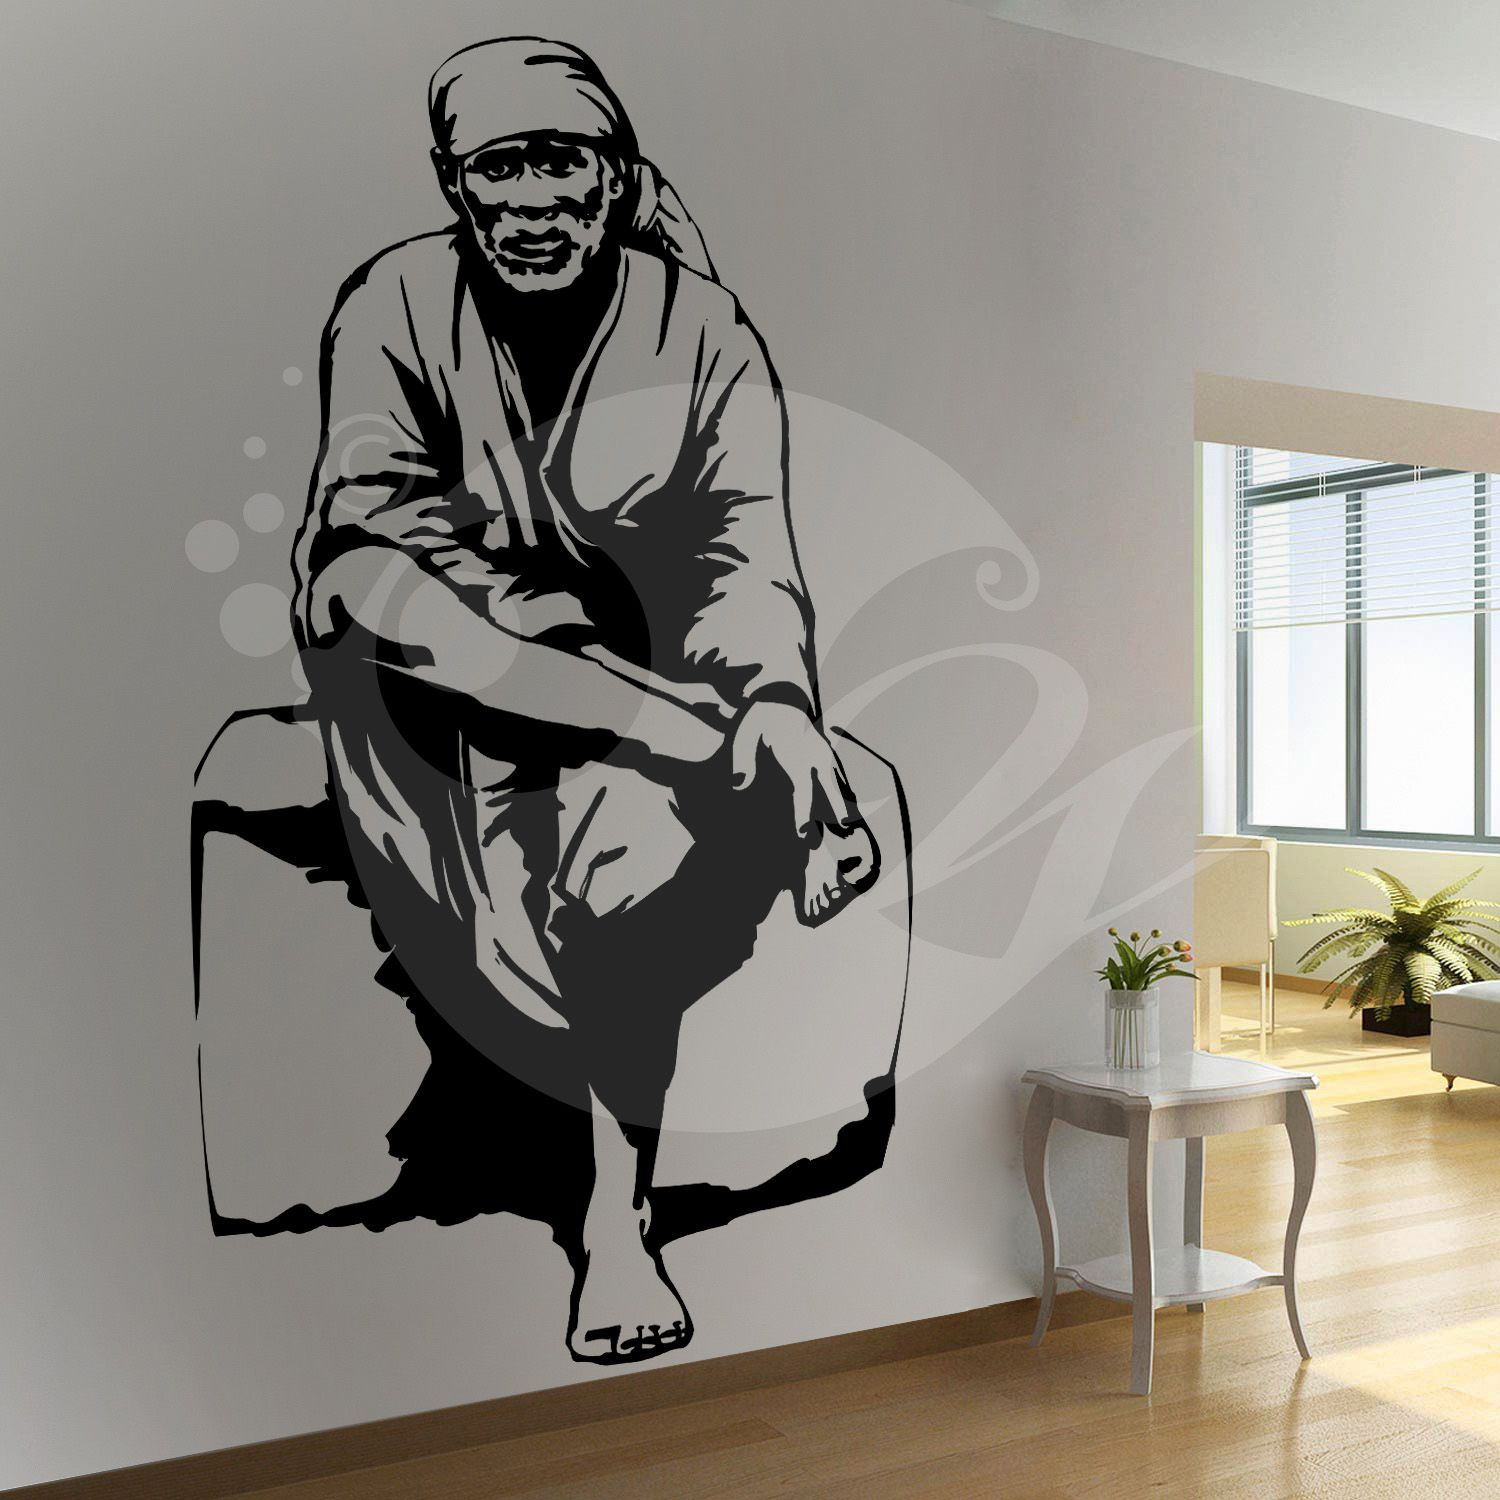 4625a813e2 With this Sai Baba Wall Sticker Decal you can decorate your walls in one of  the most modern and elegant ways